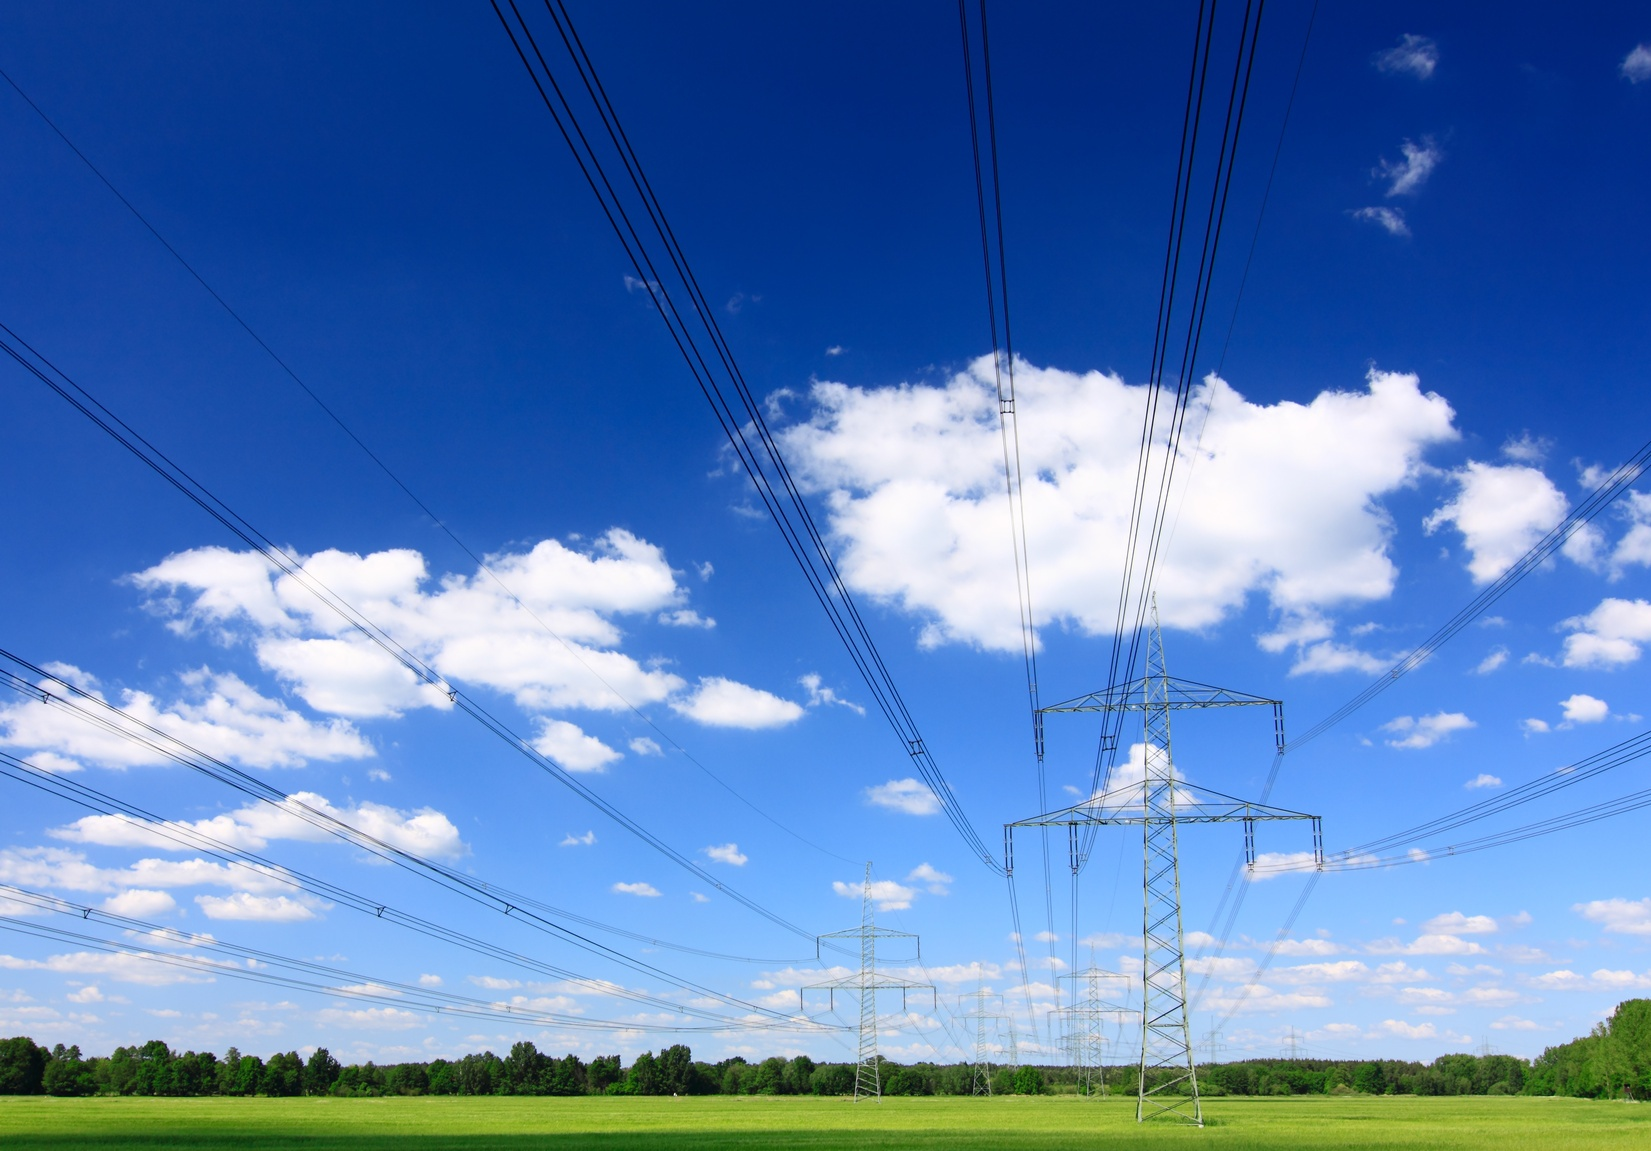 Vallebygdens Energi equipped with Gridstream Solution and Software as a Service